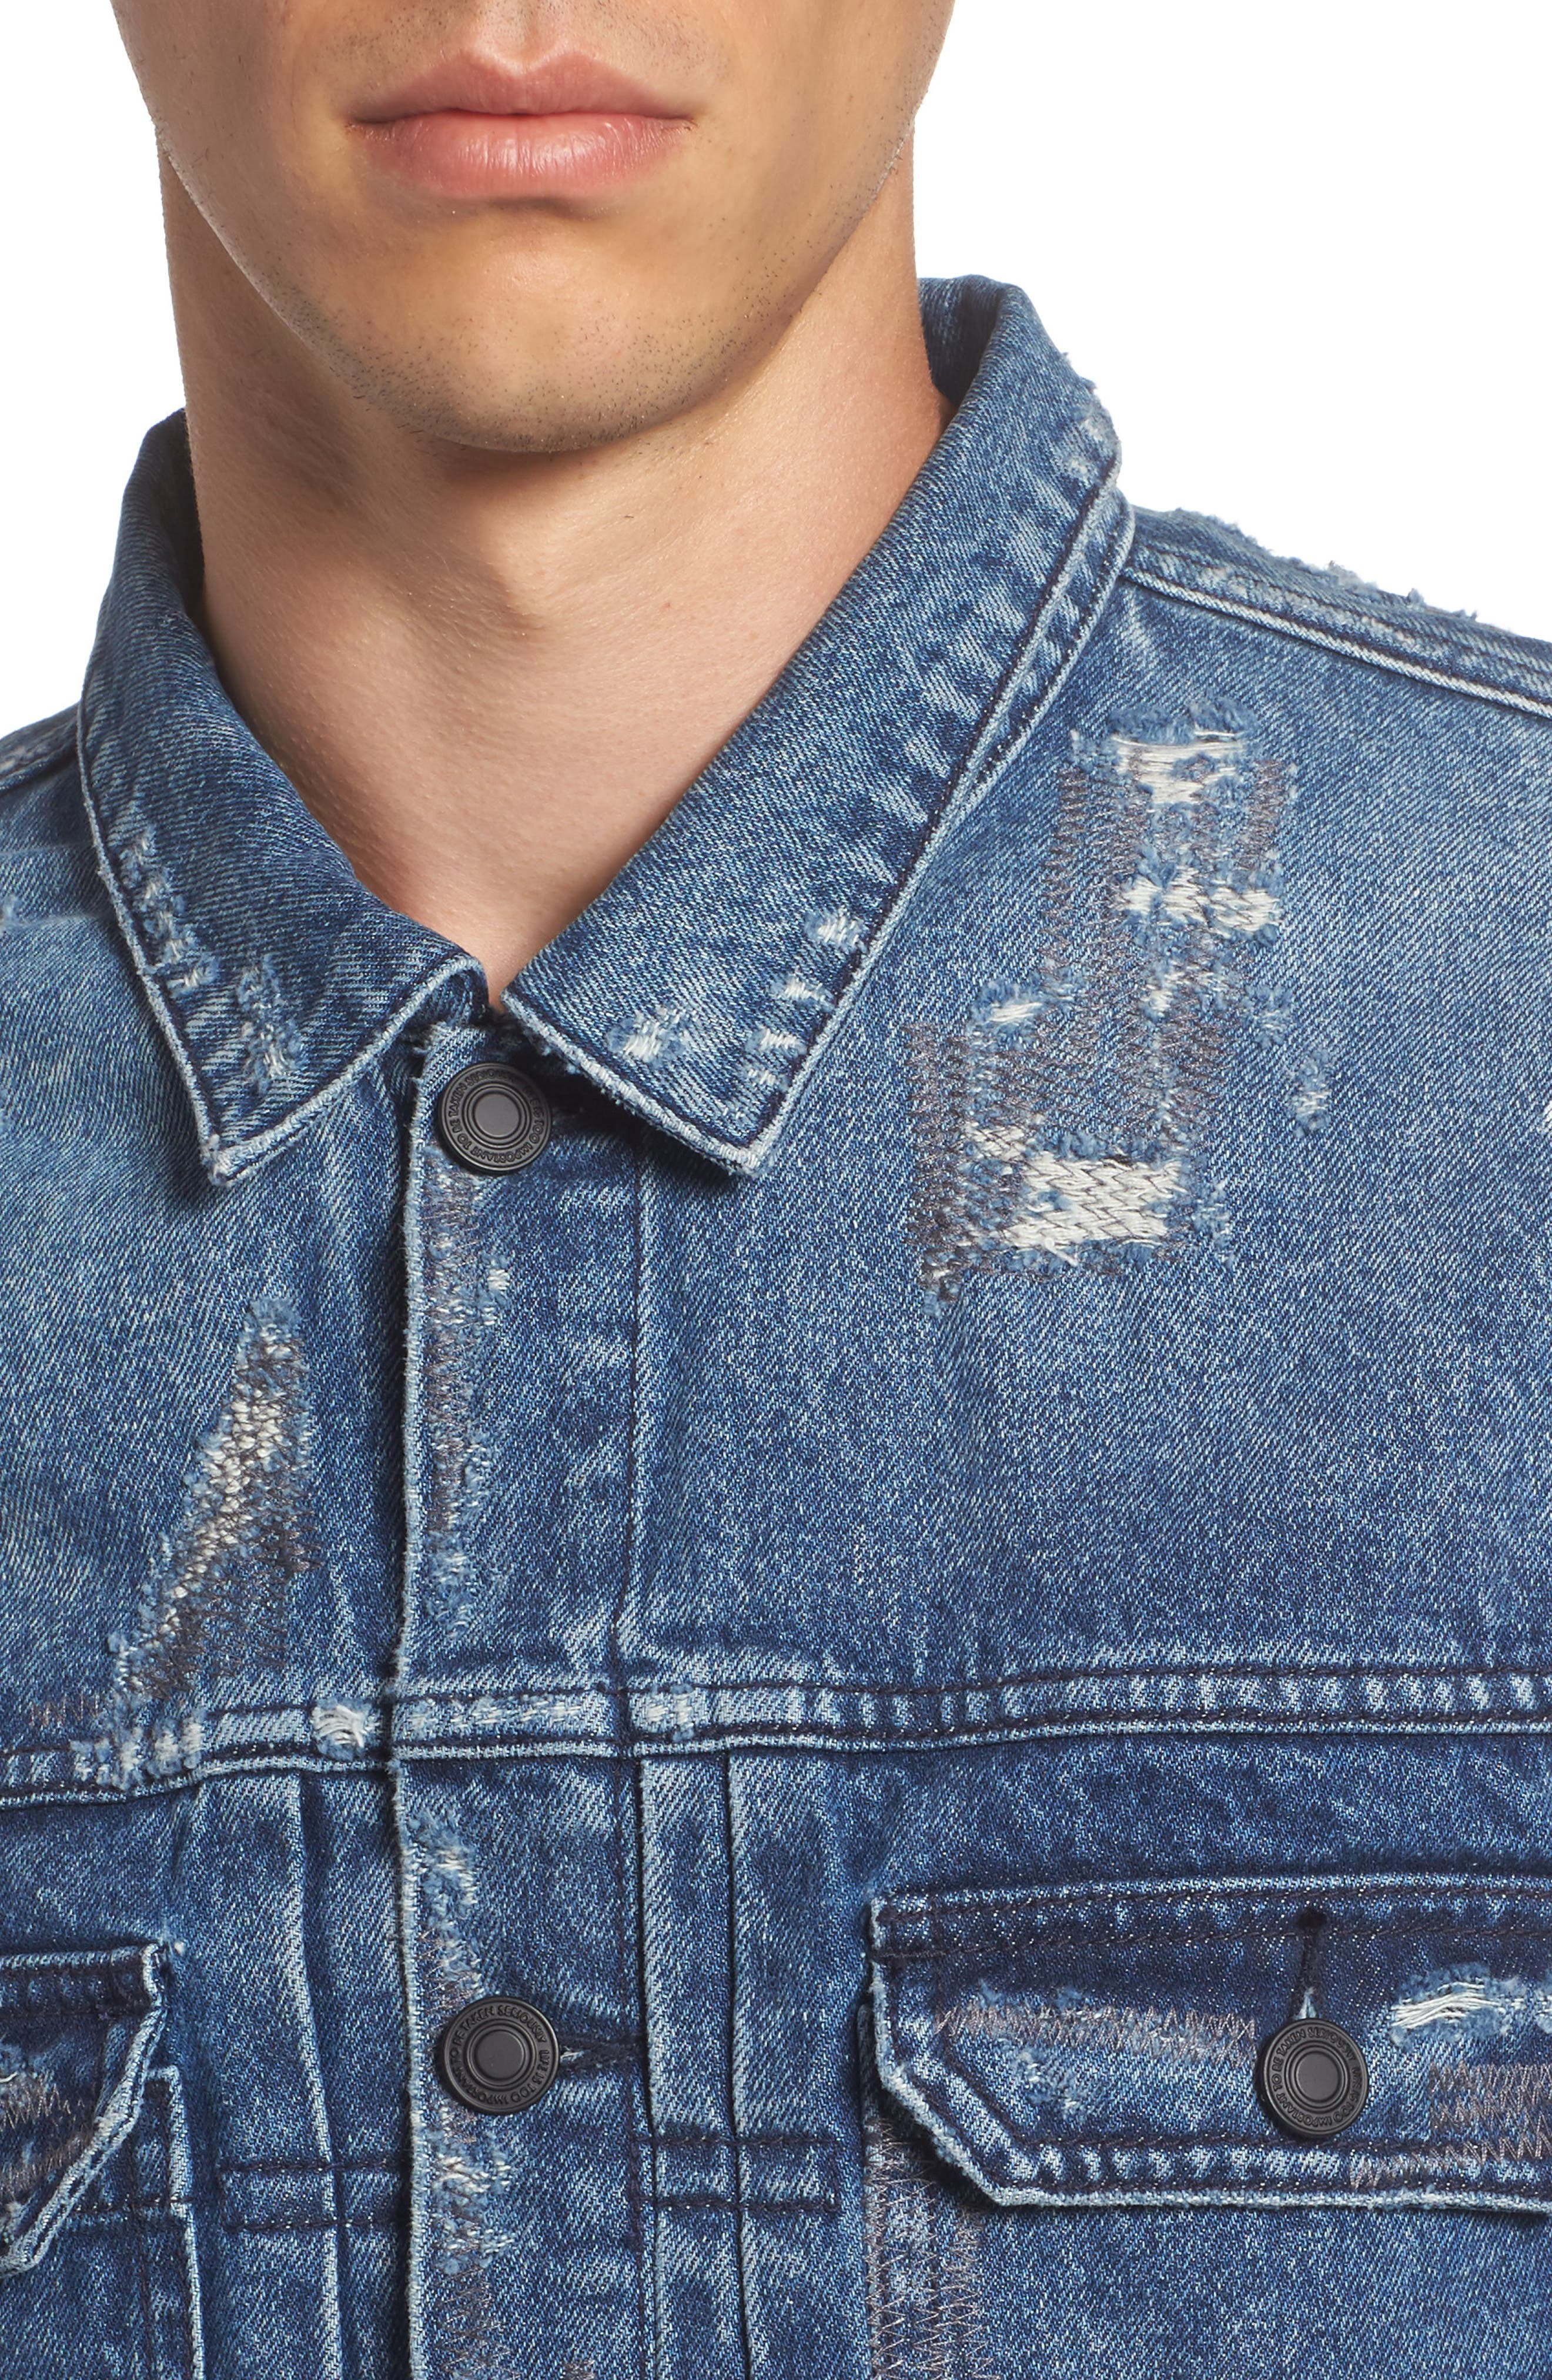 Trash Denim Jacket,                             Alternate thumbnail 4, color,                             460